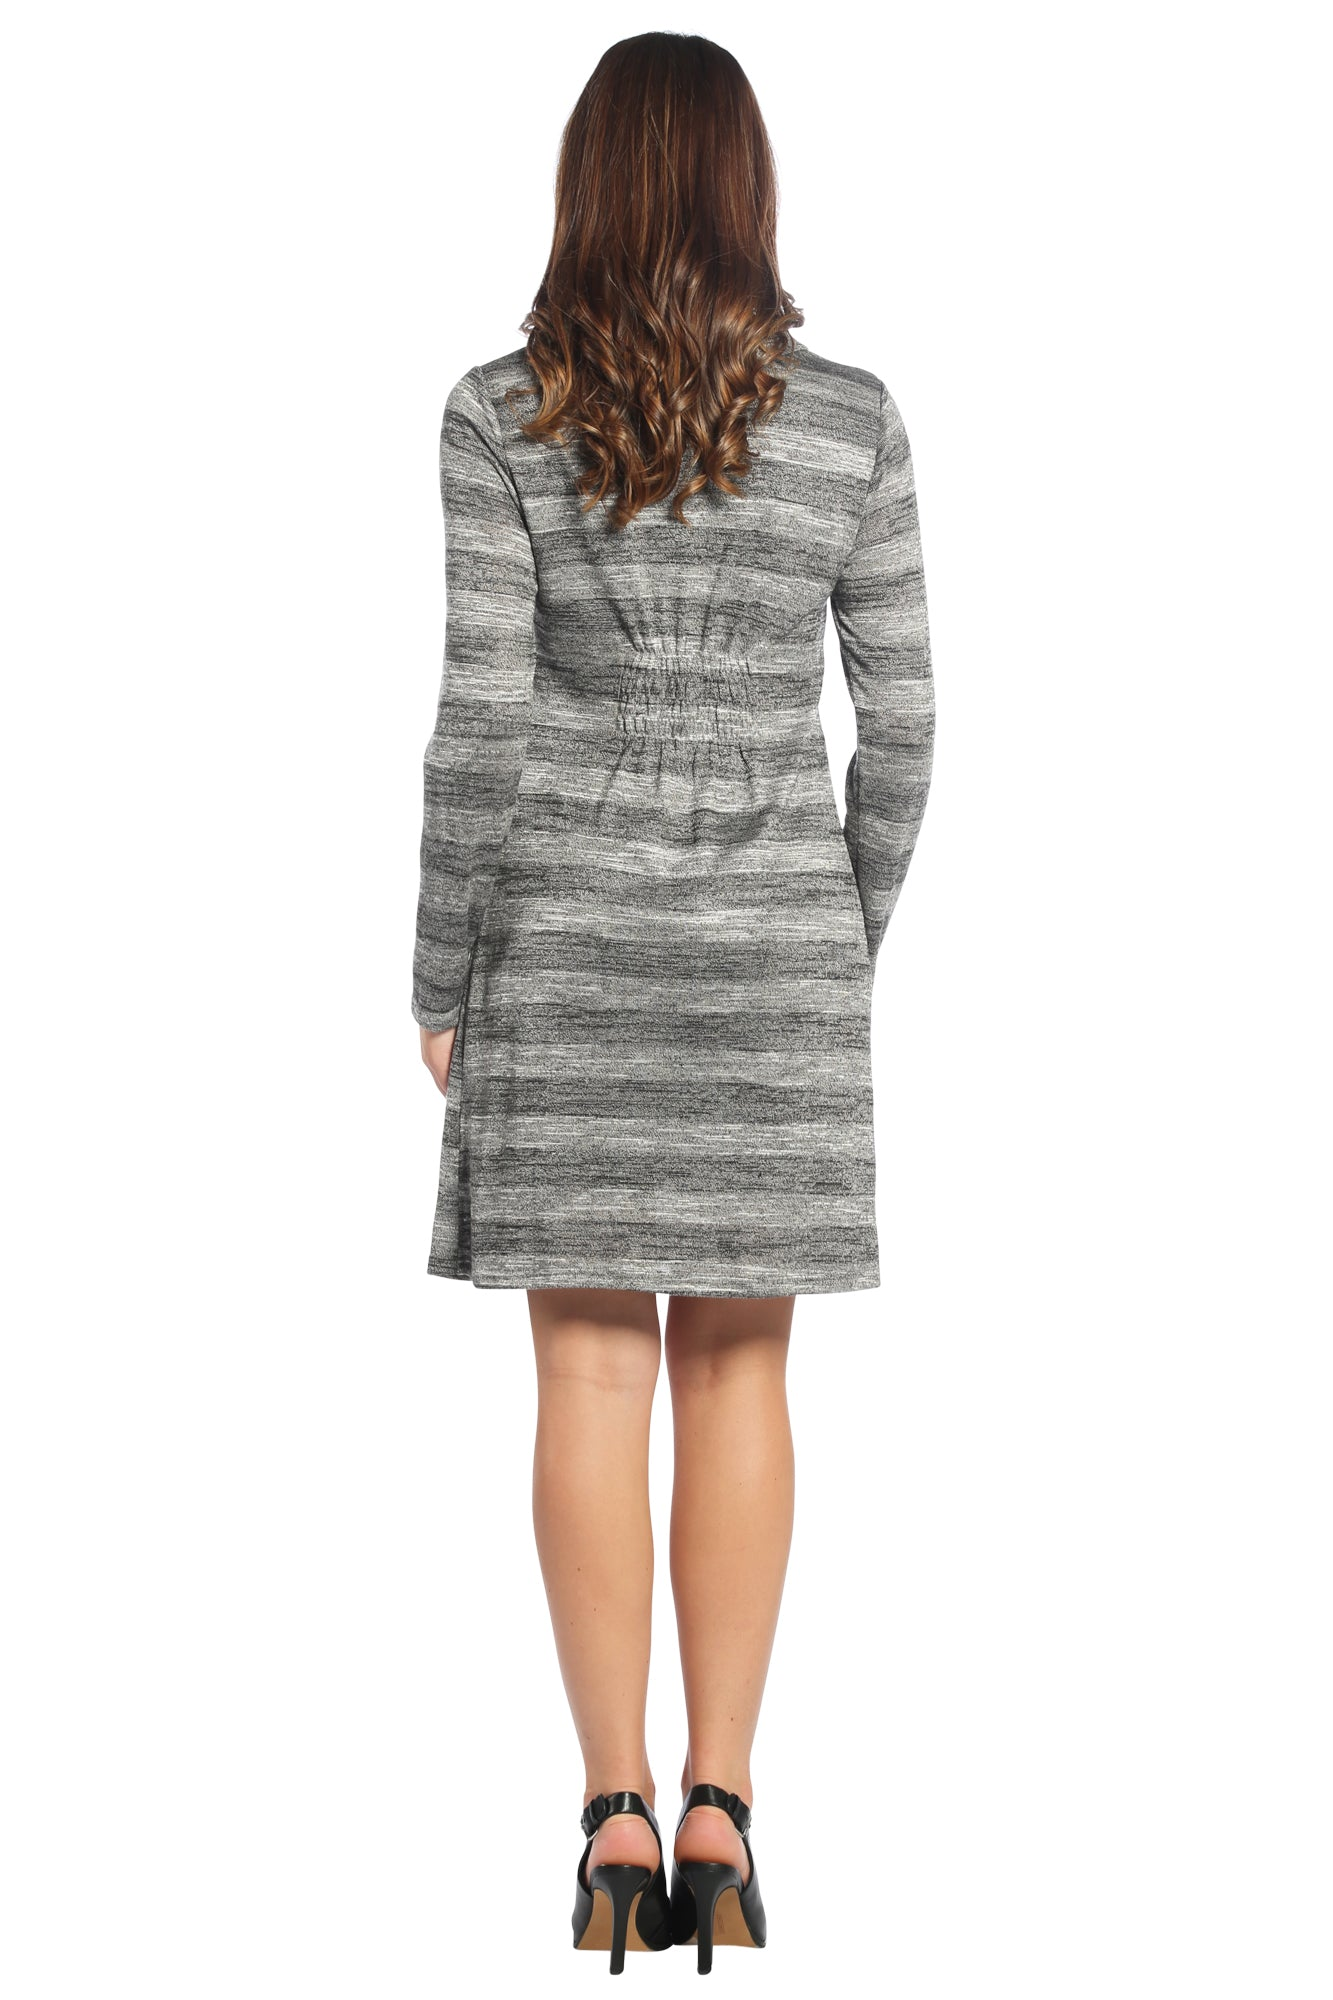 Striped Cowl Neck Button Dress in Charcoal